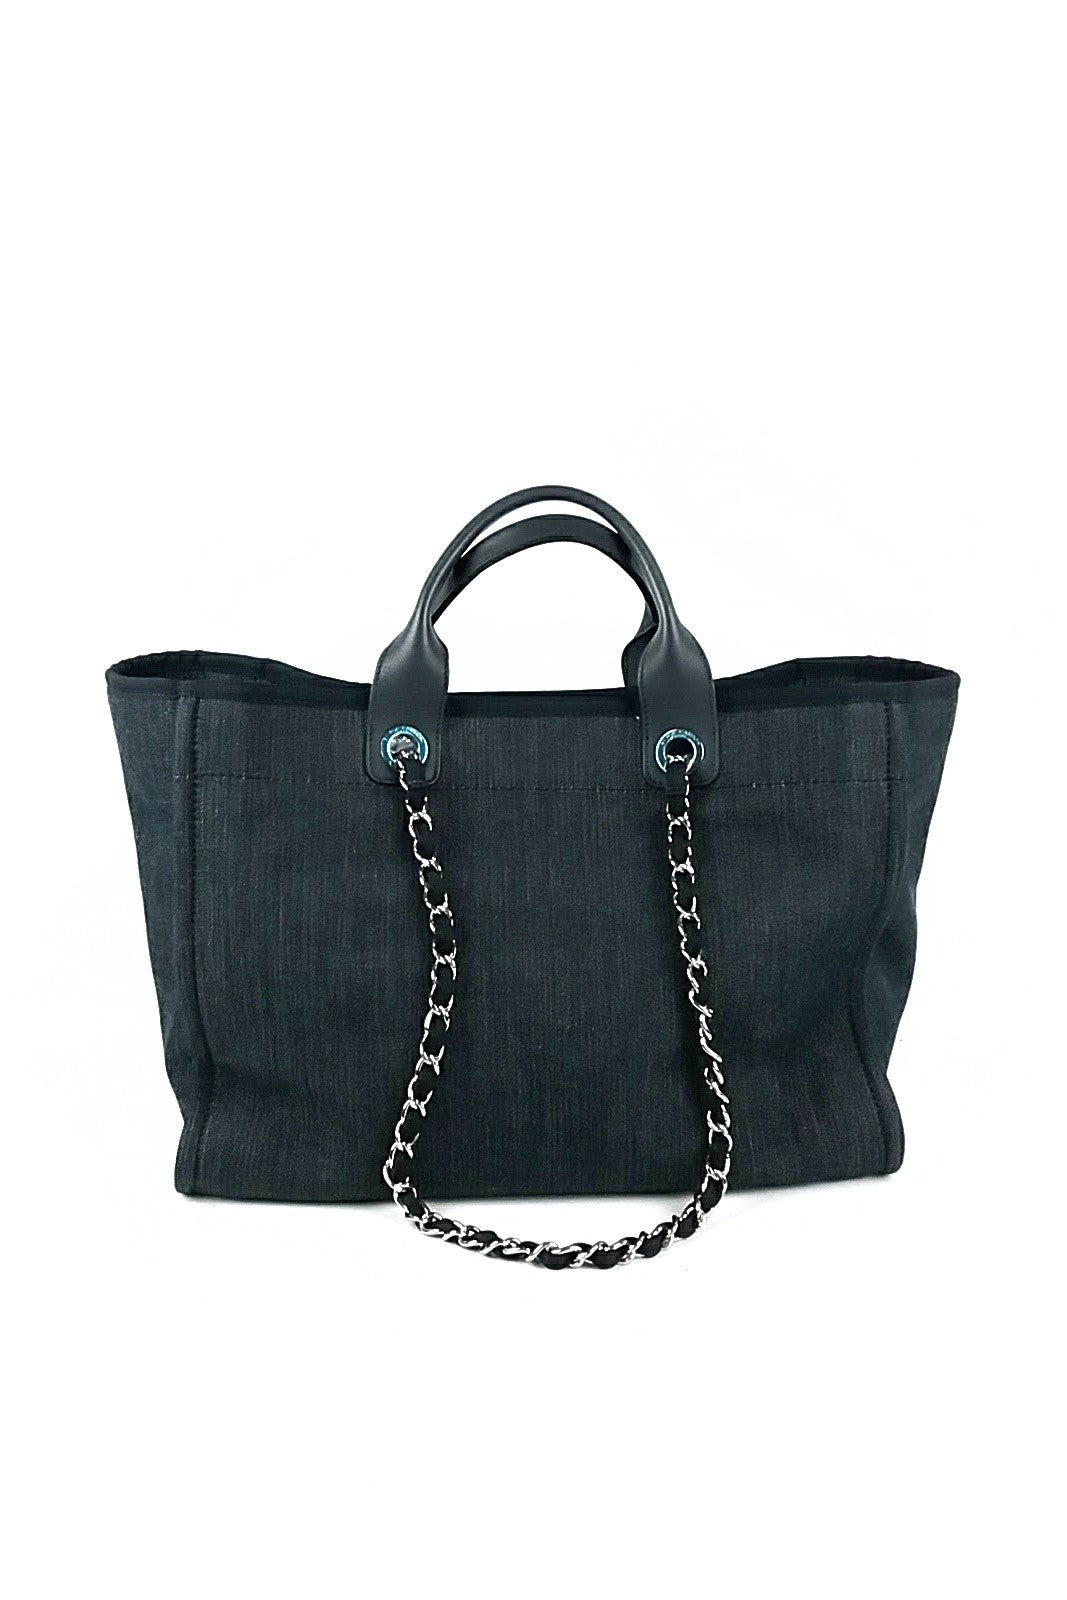 Dark Grey Large Deauville Tote